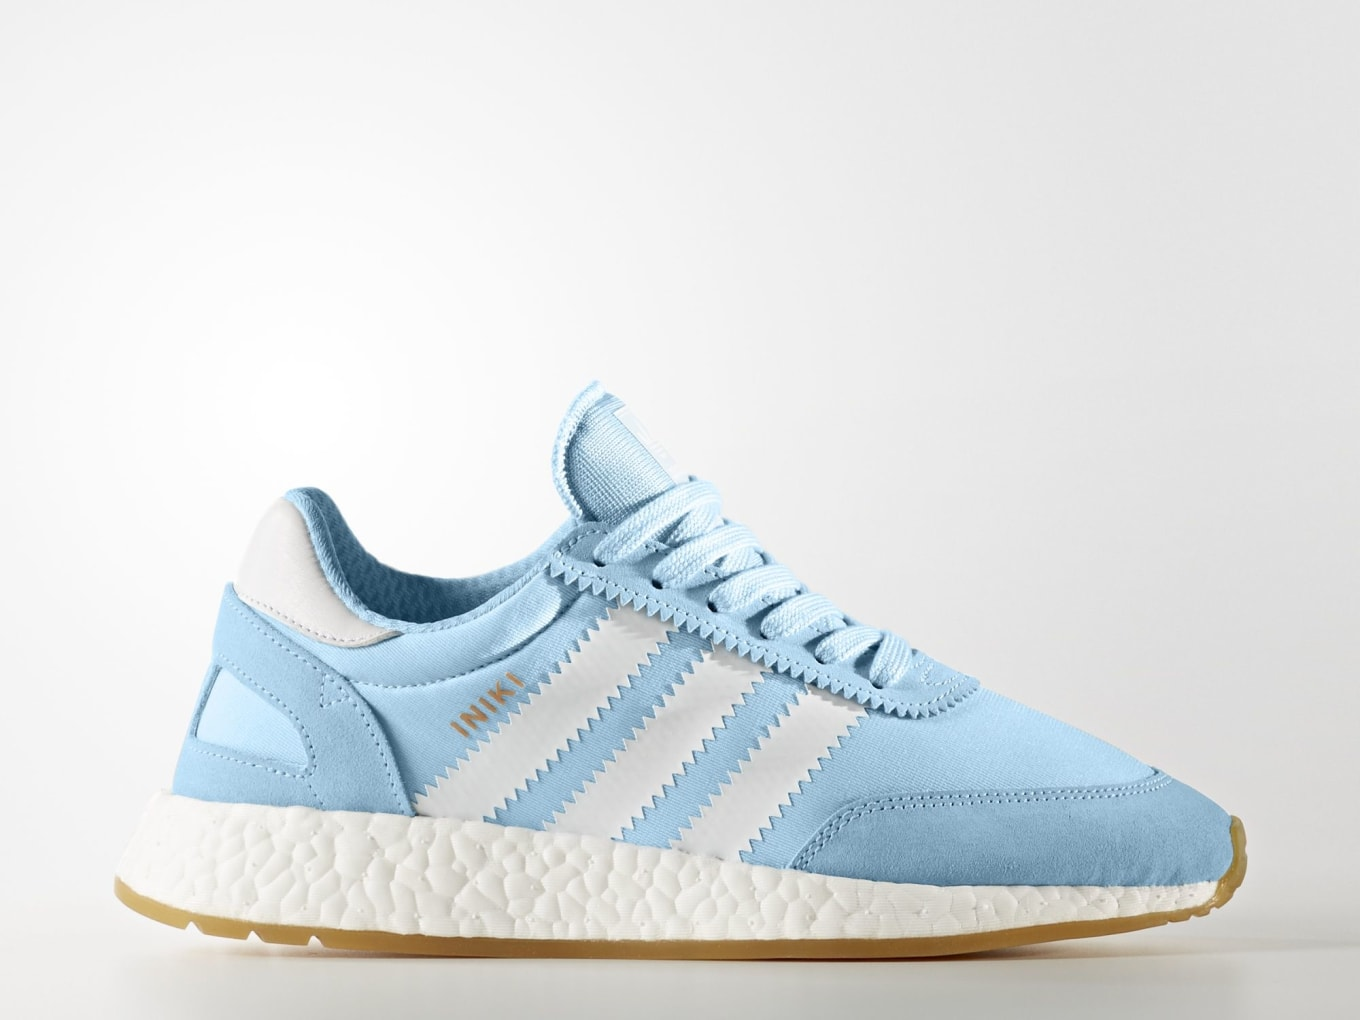 hot new products no sale tax online store Adidas Iniki Runner June 2017 Colorways | Sole Collector